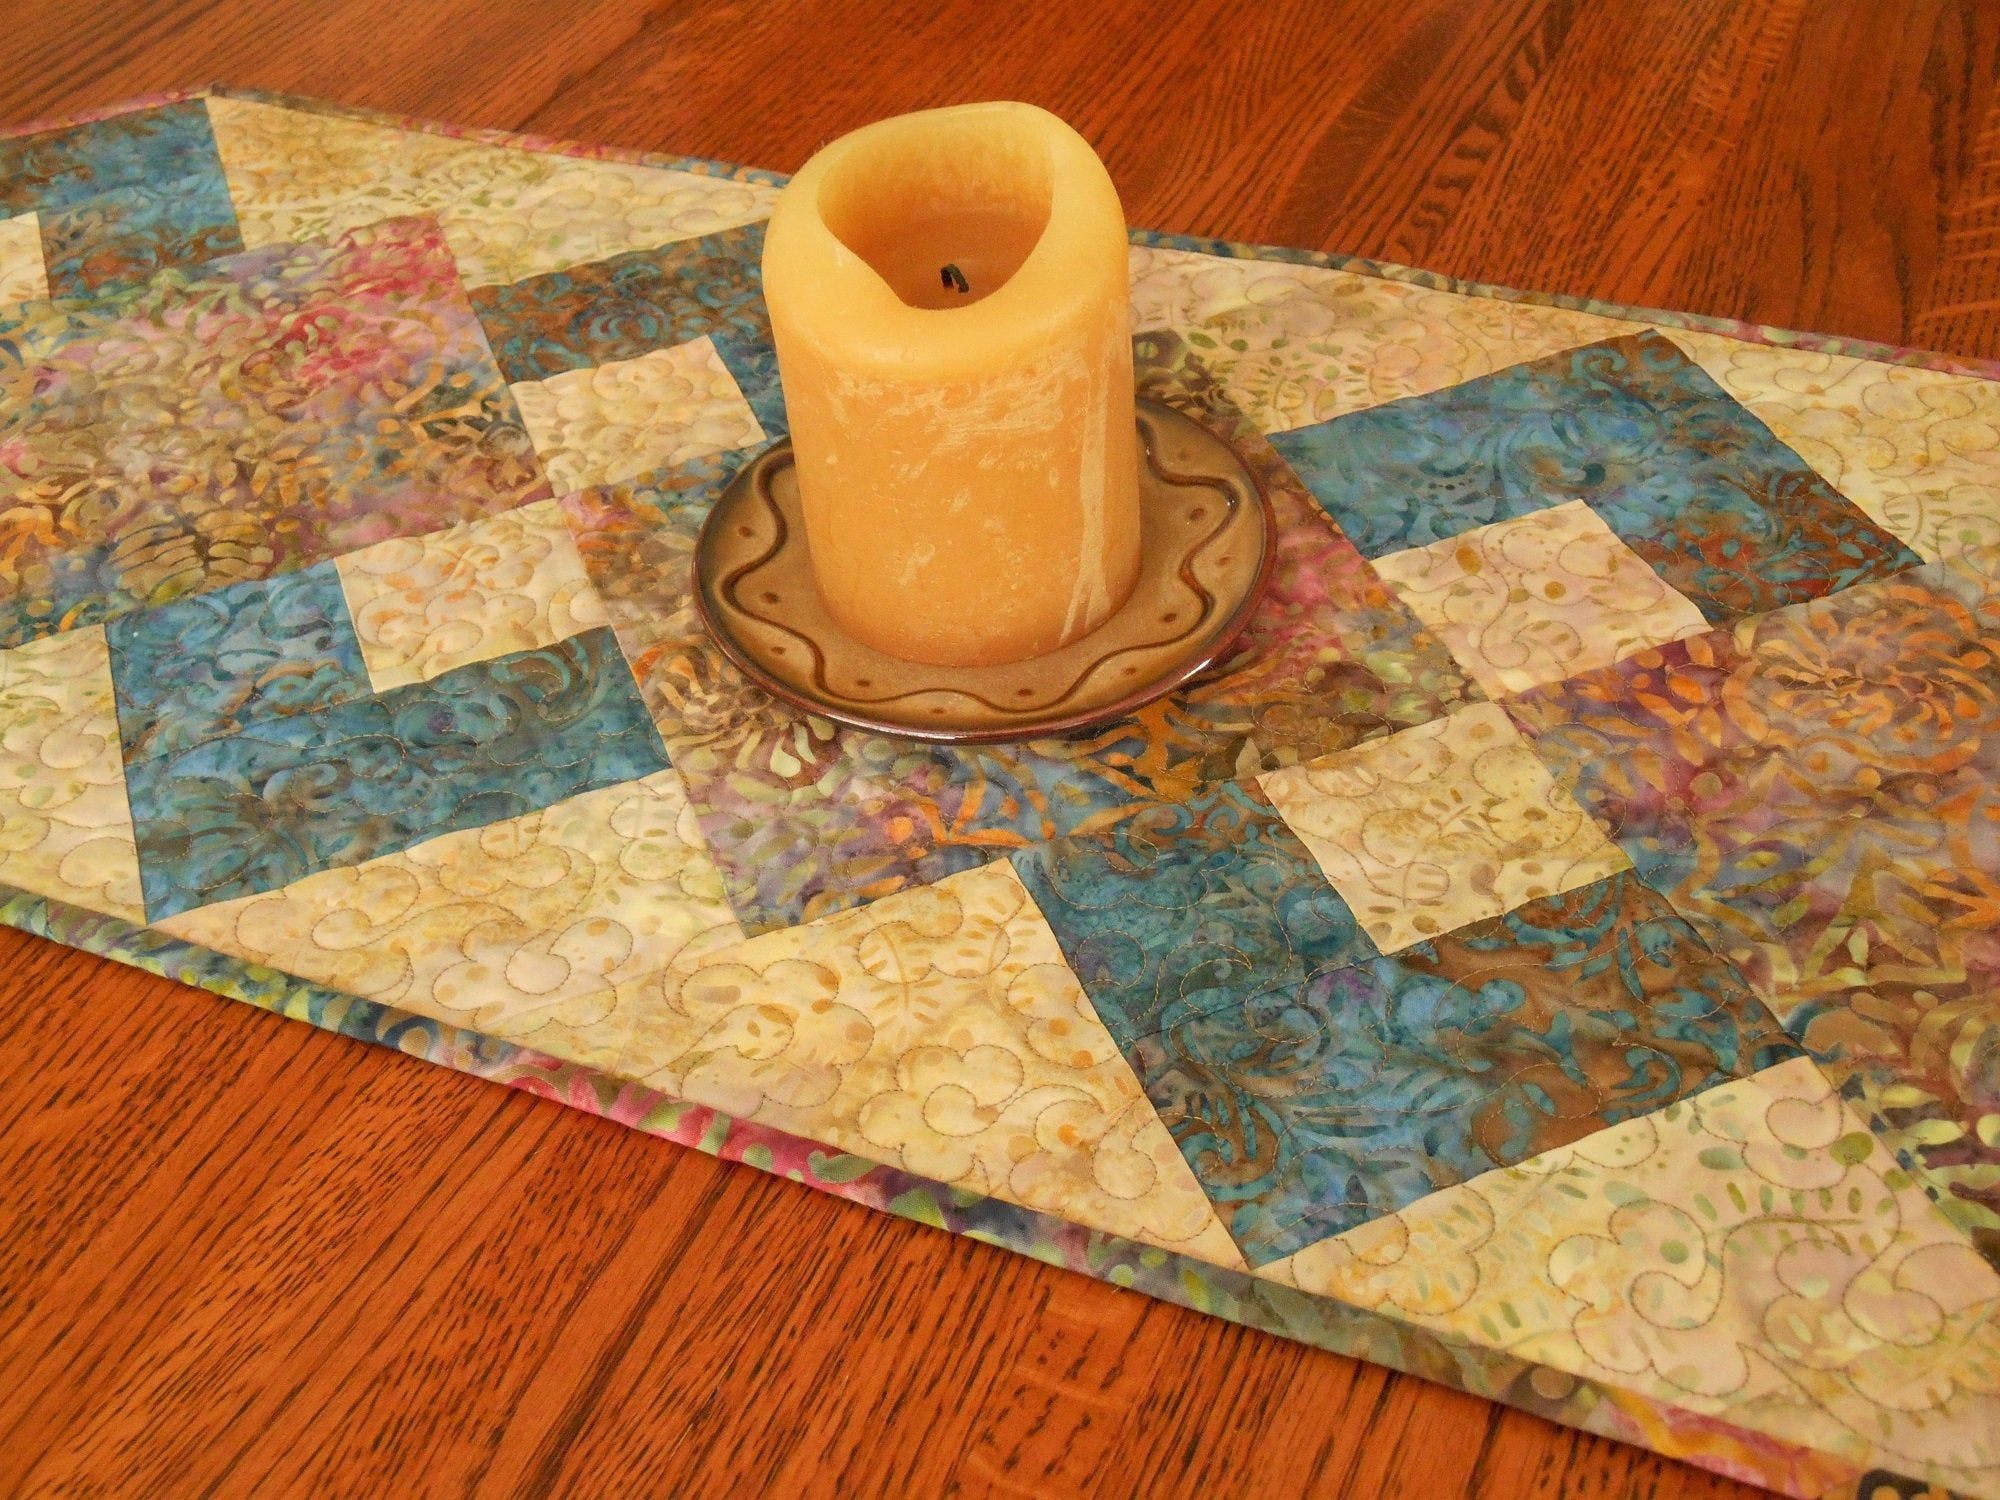 Quilted Batik Table Runner Boho Chic Style In Warm Shades Of Gold